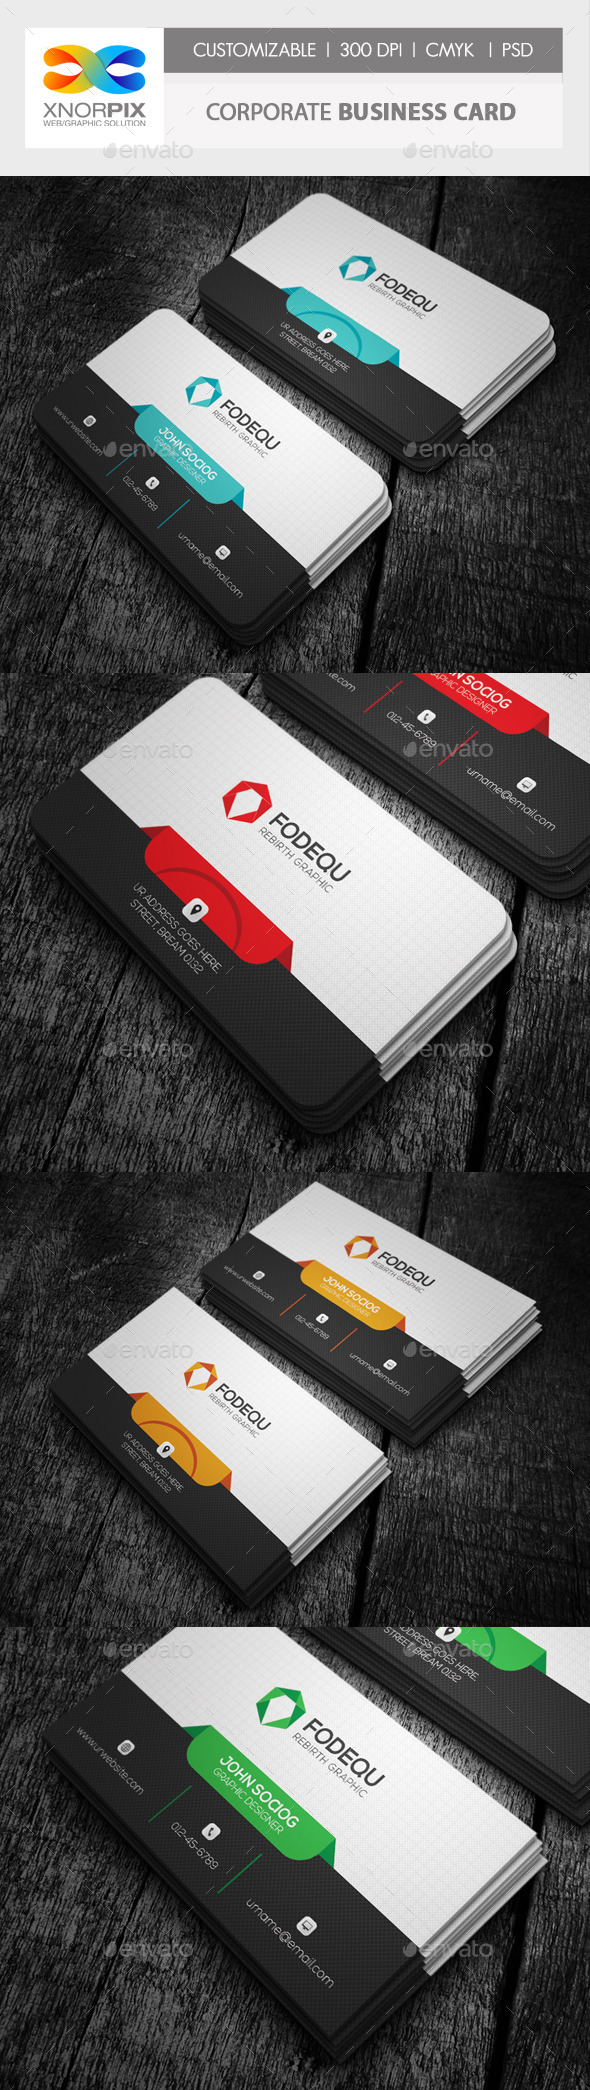 GraphicRiver Corporate Business Card 10013538